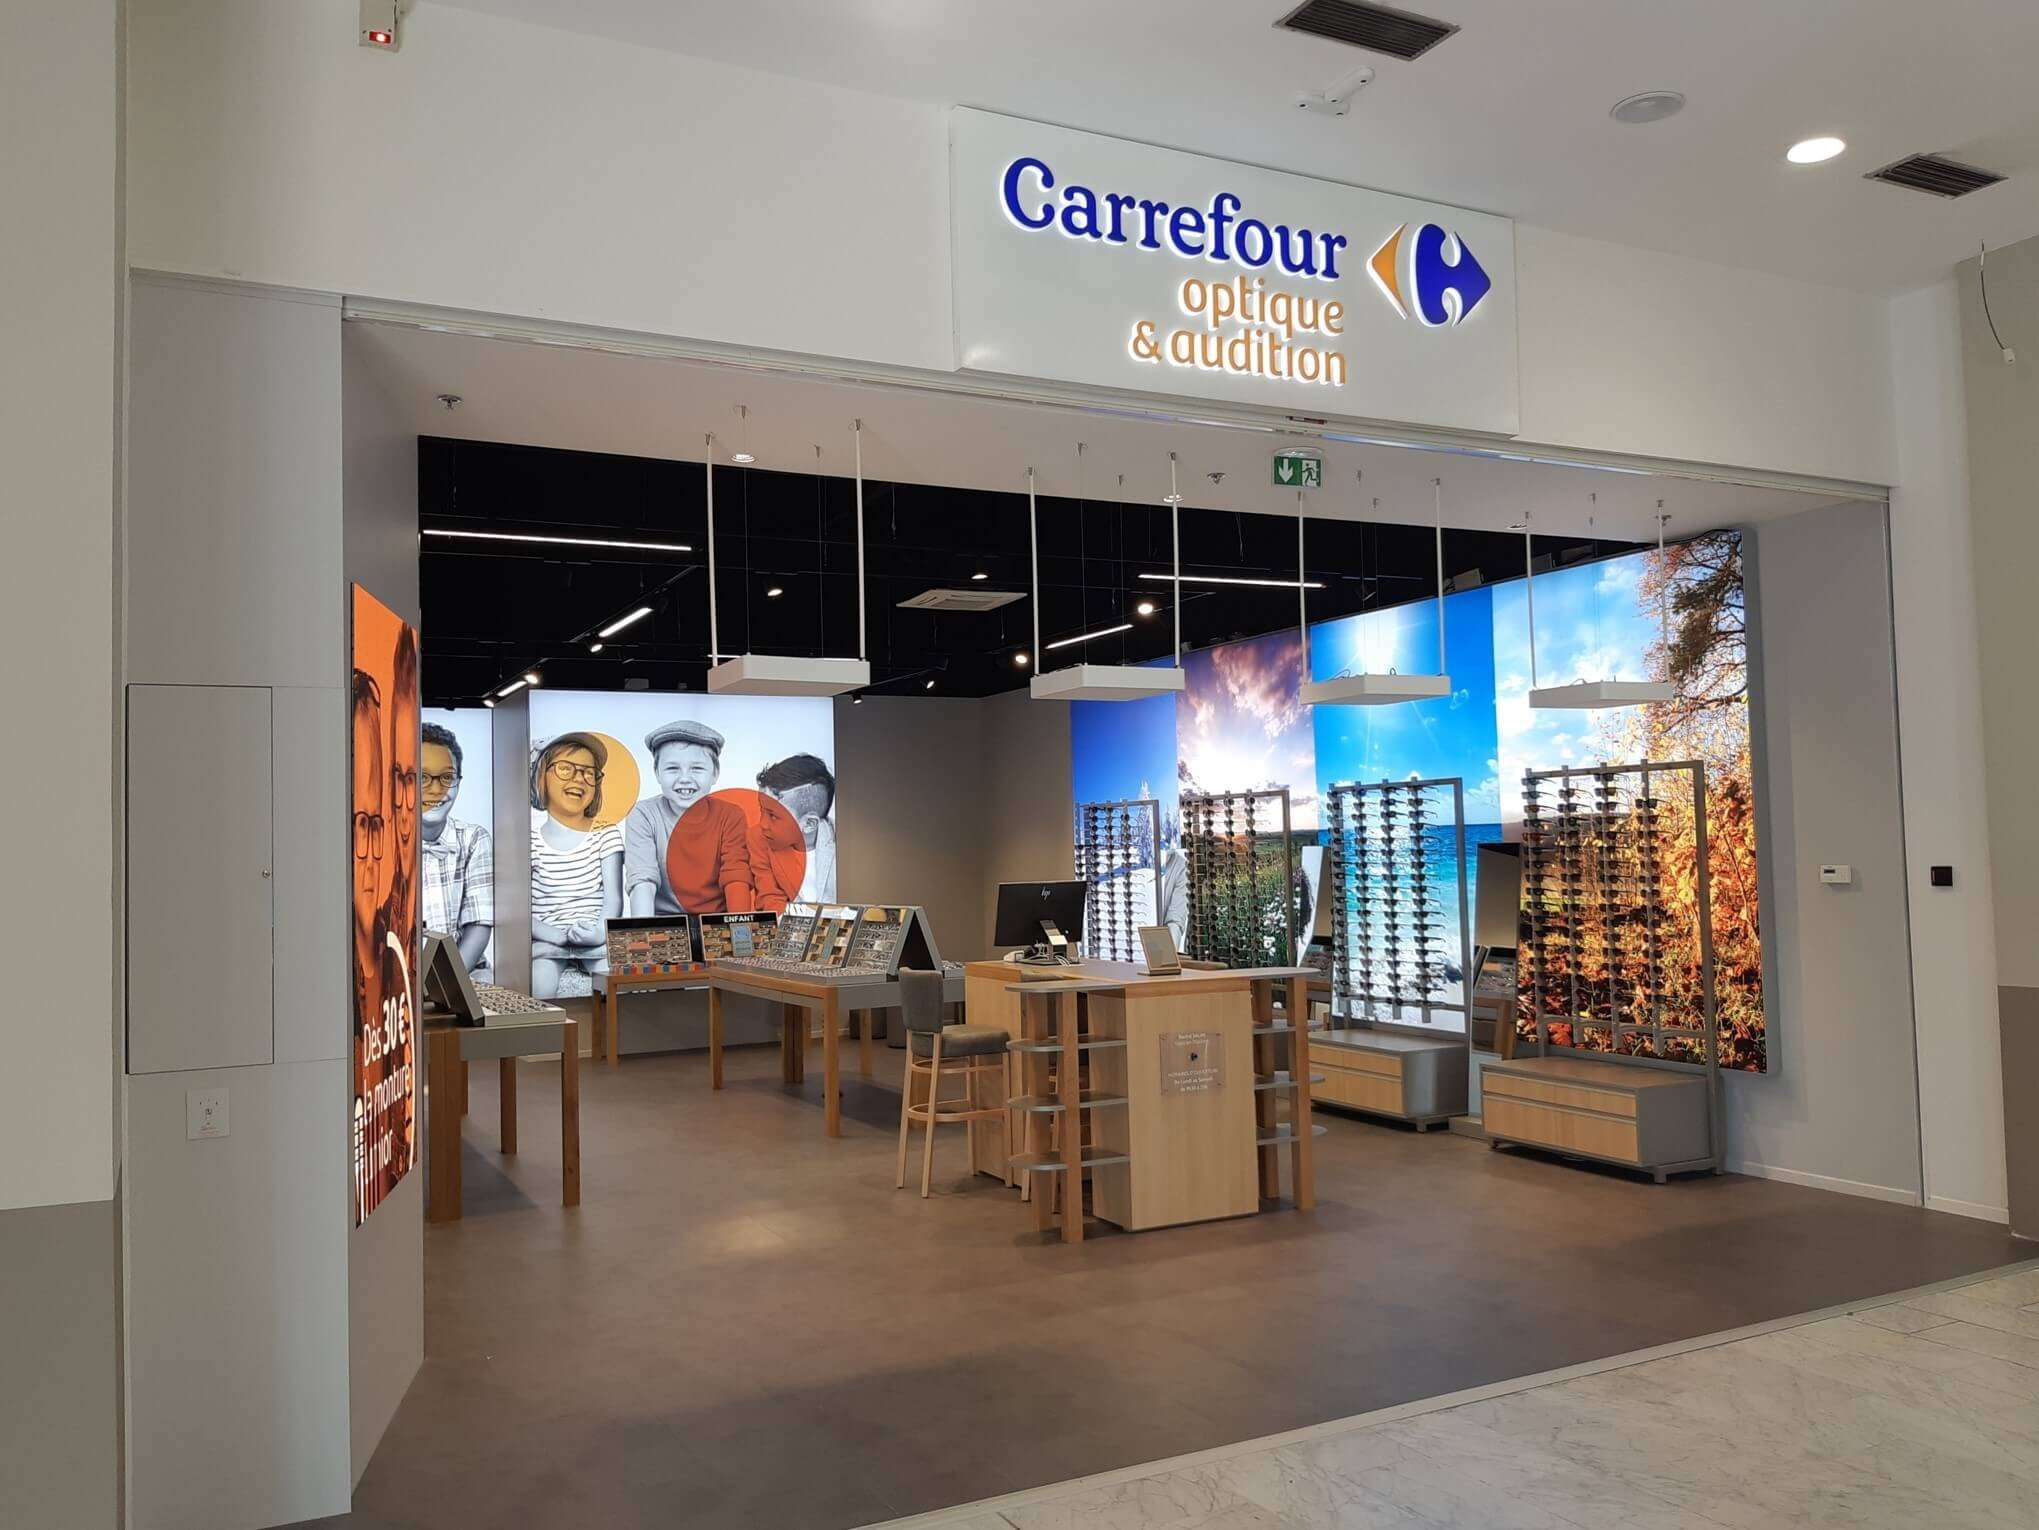 Carrefour Optique et Audition